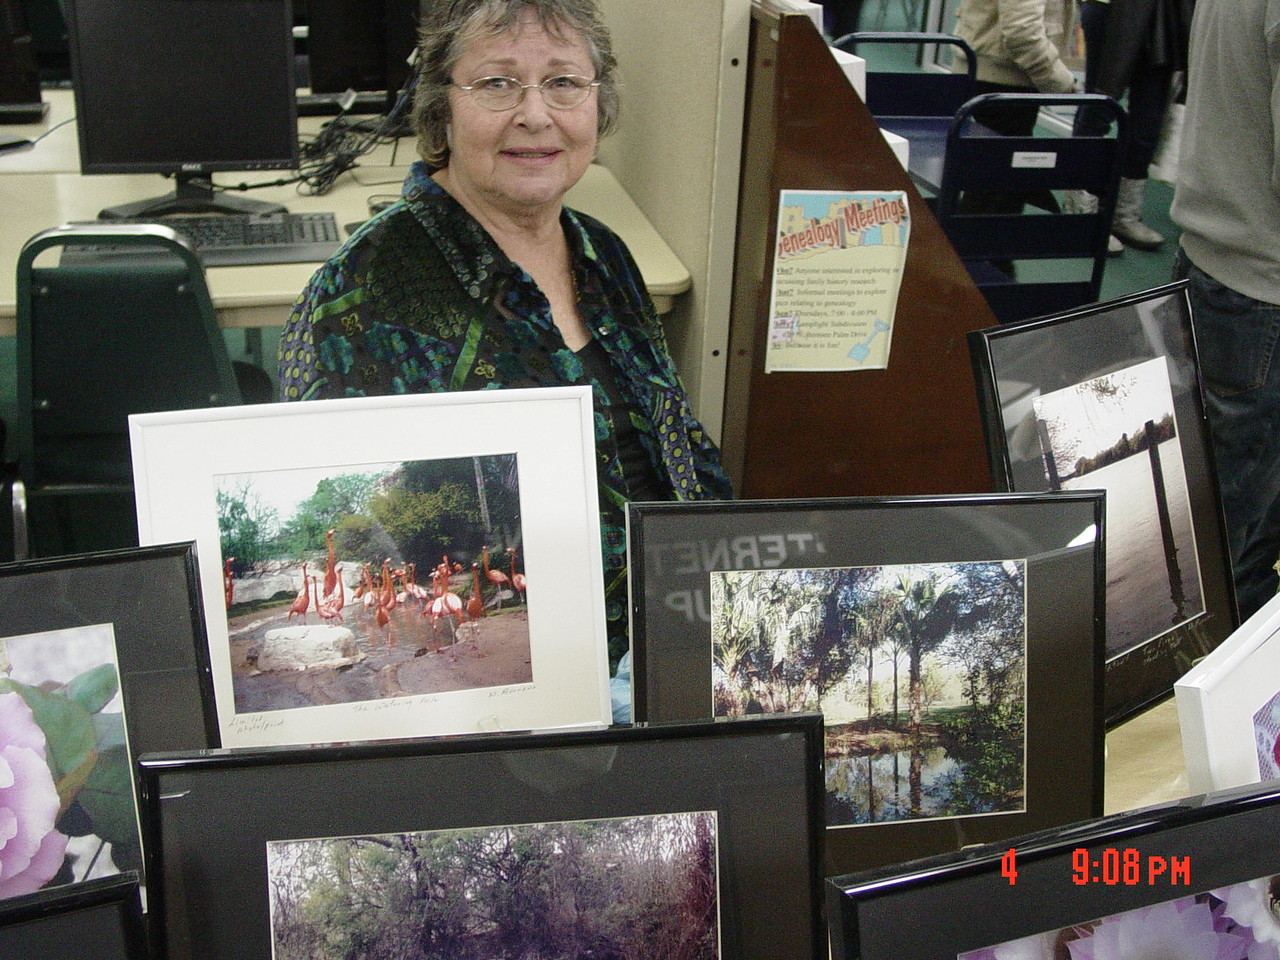 Wendy Burrows exhibiting her photography.